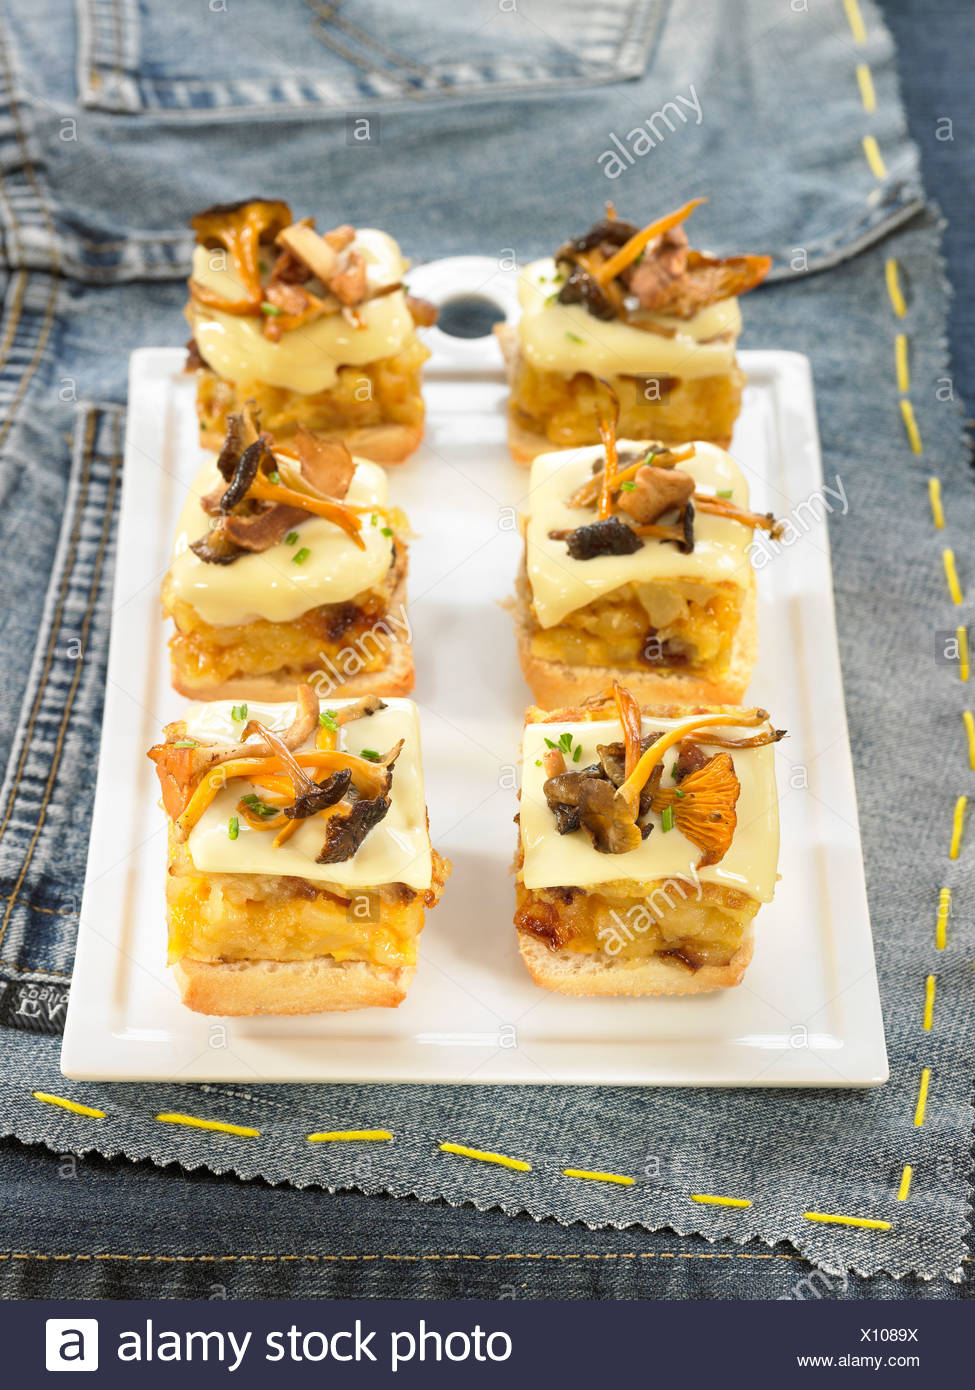 Mushroom,cheese and onion omelette - Stock Image